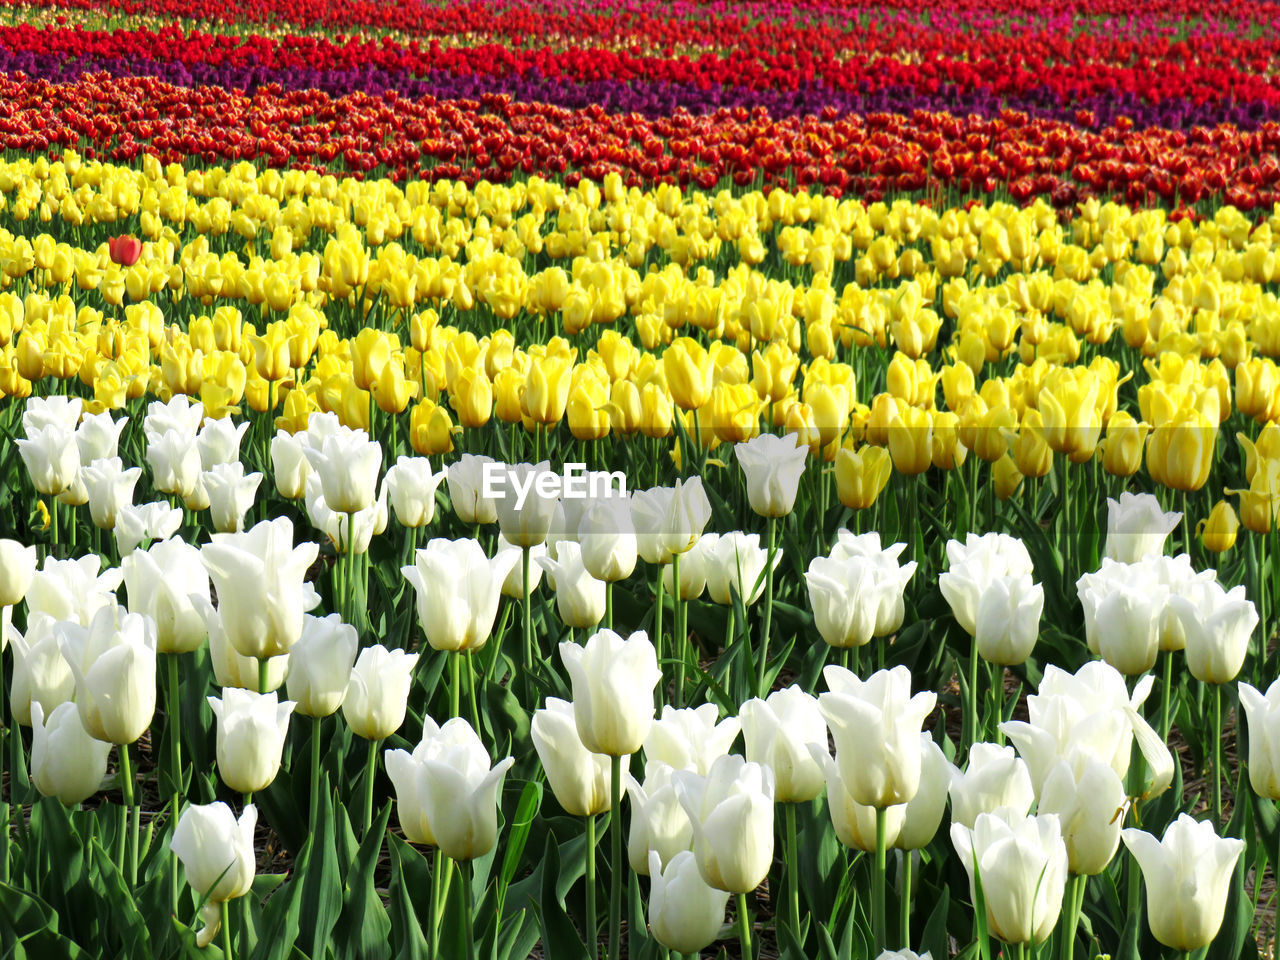 flower, flowering plant, beauty in nature, freshness, plant, tulip, field, fragility, vulnerability, white color, yellow, growth, nature, land, abundance, no people, day, petal, multi colored, agriculture, flowerbed, springtime, flower head, outdoors